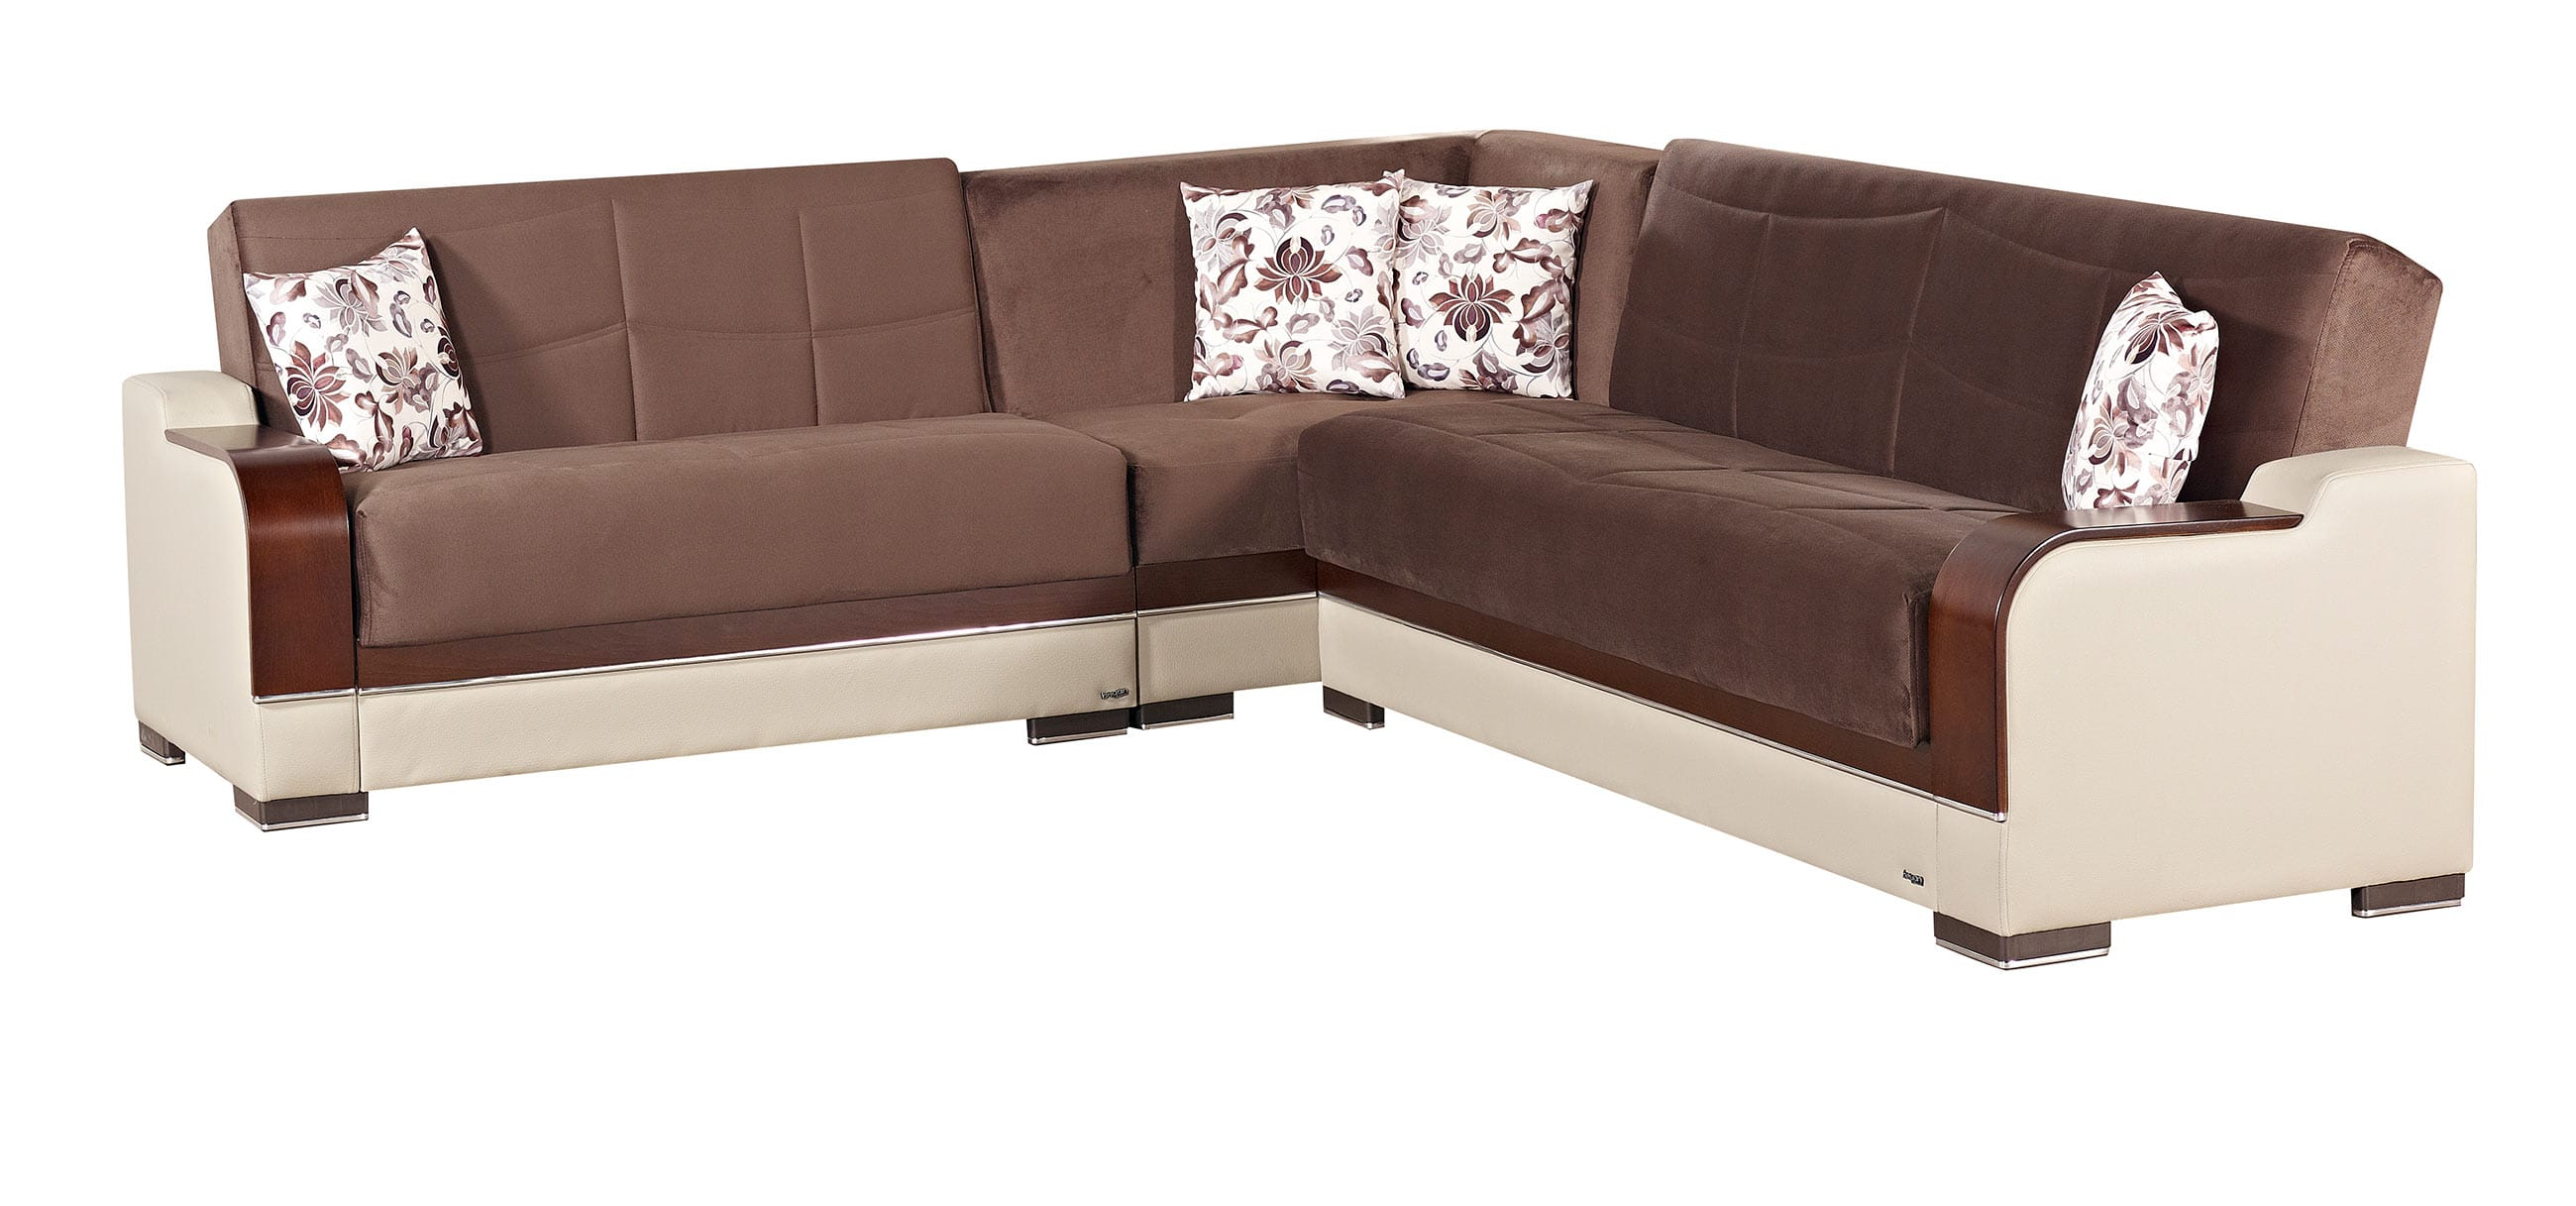 Texas Brown Fabric Sectional Sofa by Empire Furniture USA